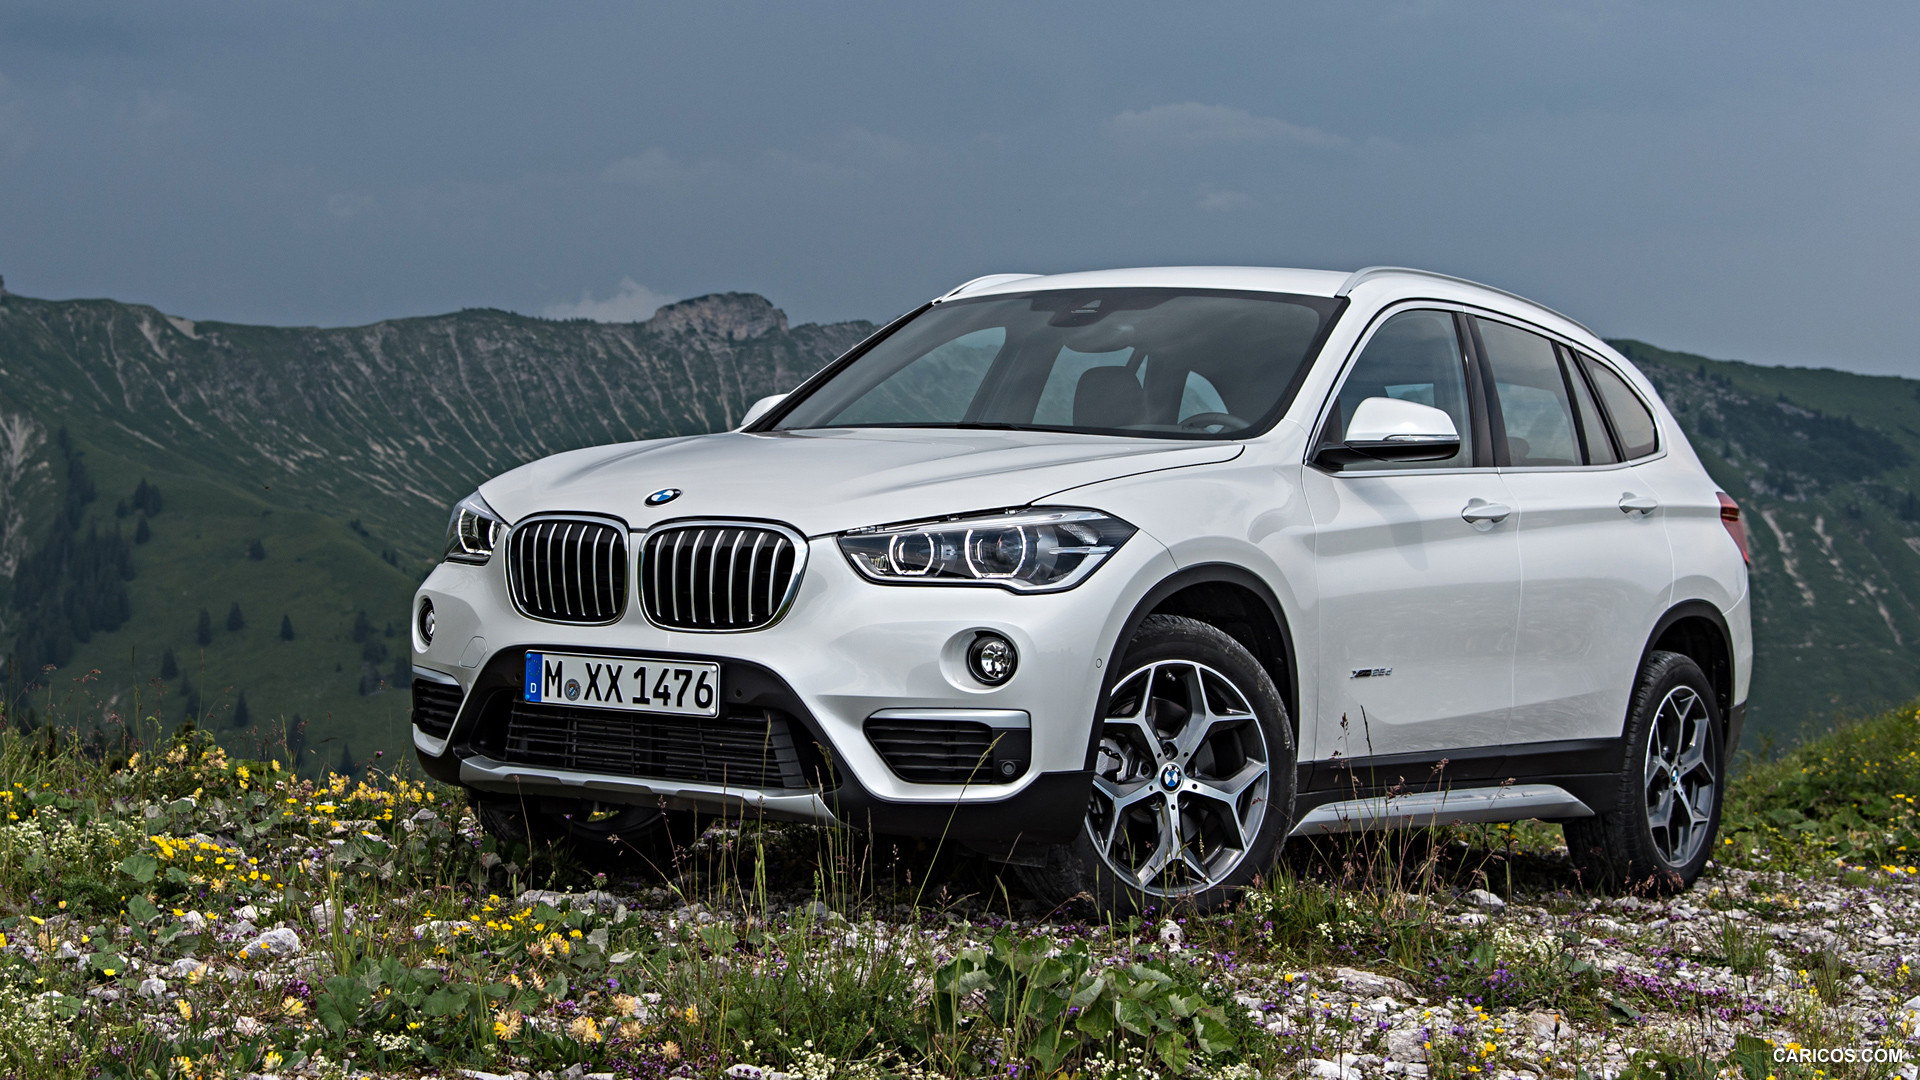 Bmw X1 2016 Hd Wallpapers Free Download